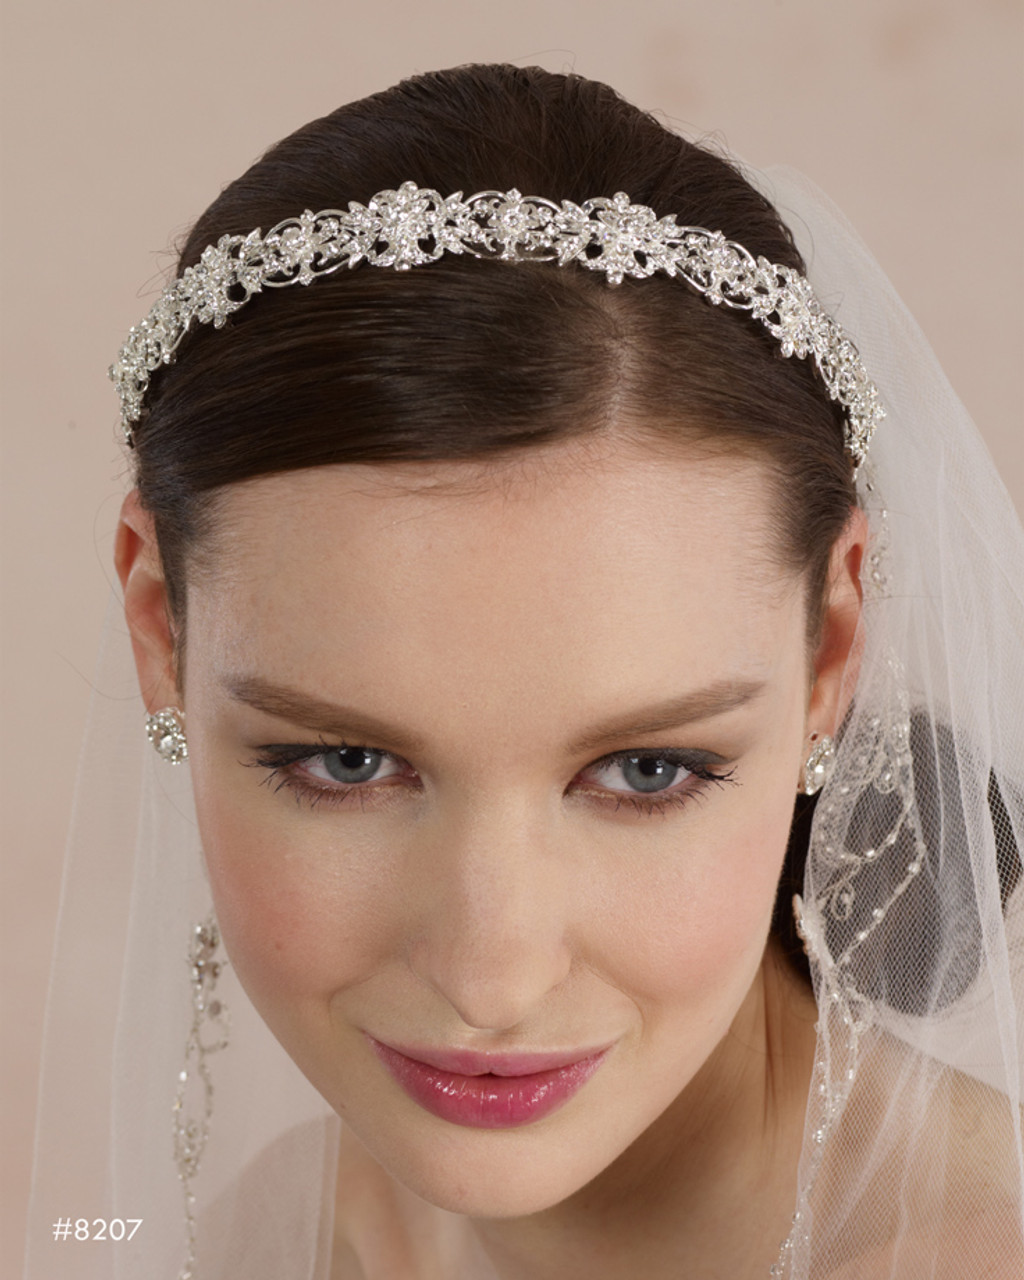 Marionat Bridal Headpieces 8207 - Marionat Bridal Accessories